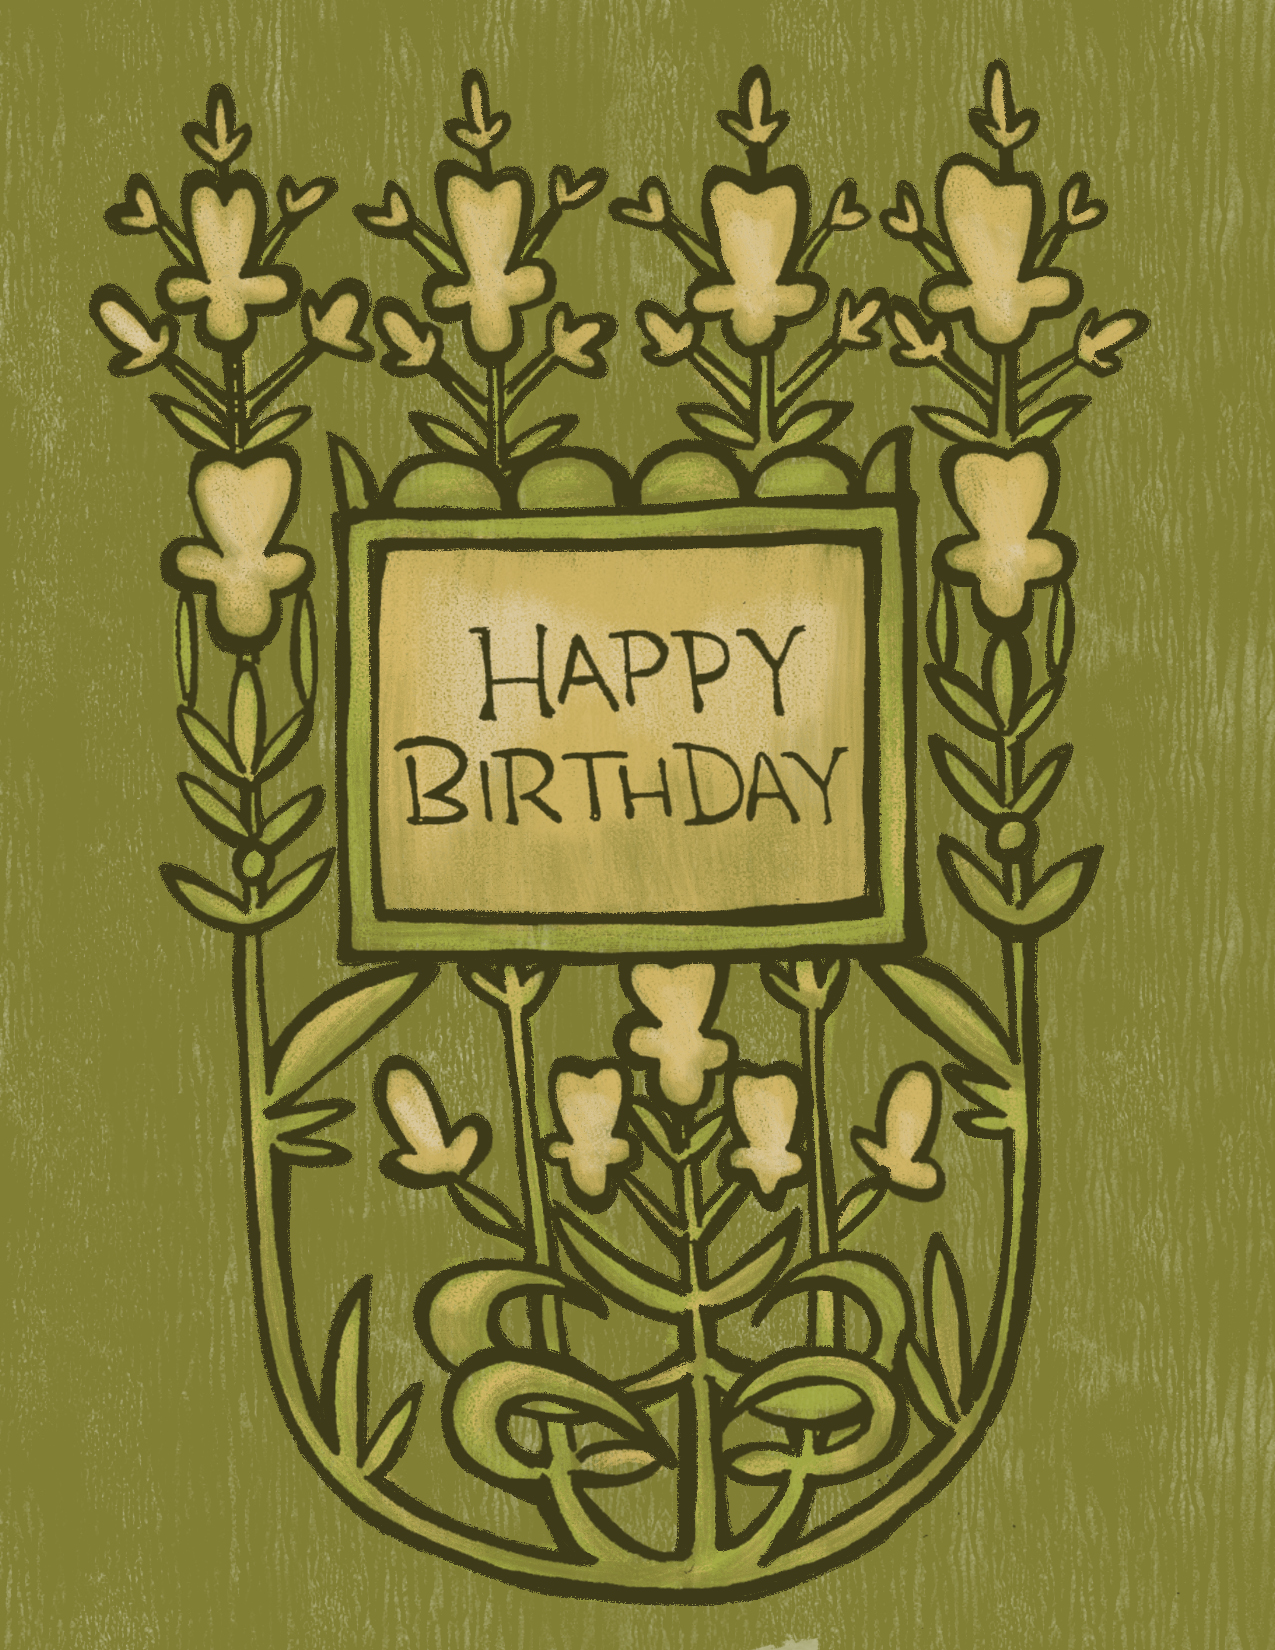 Happy Birthday Green Floral.jpg